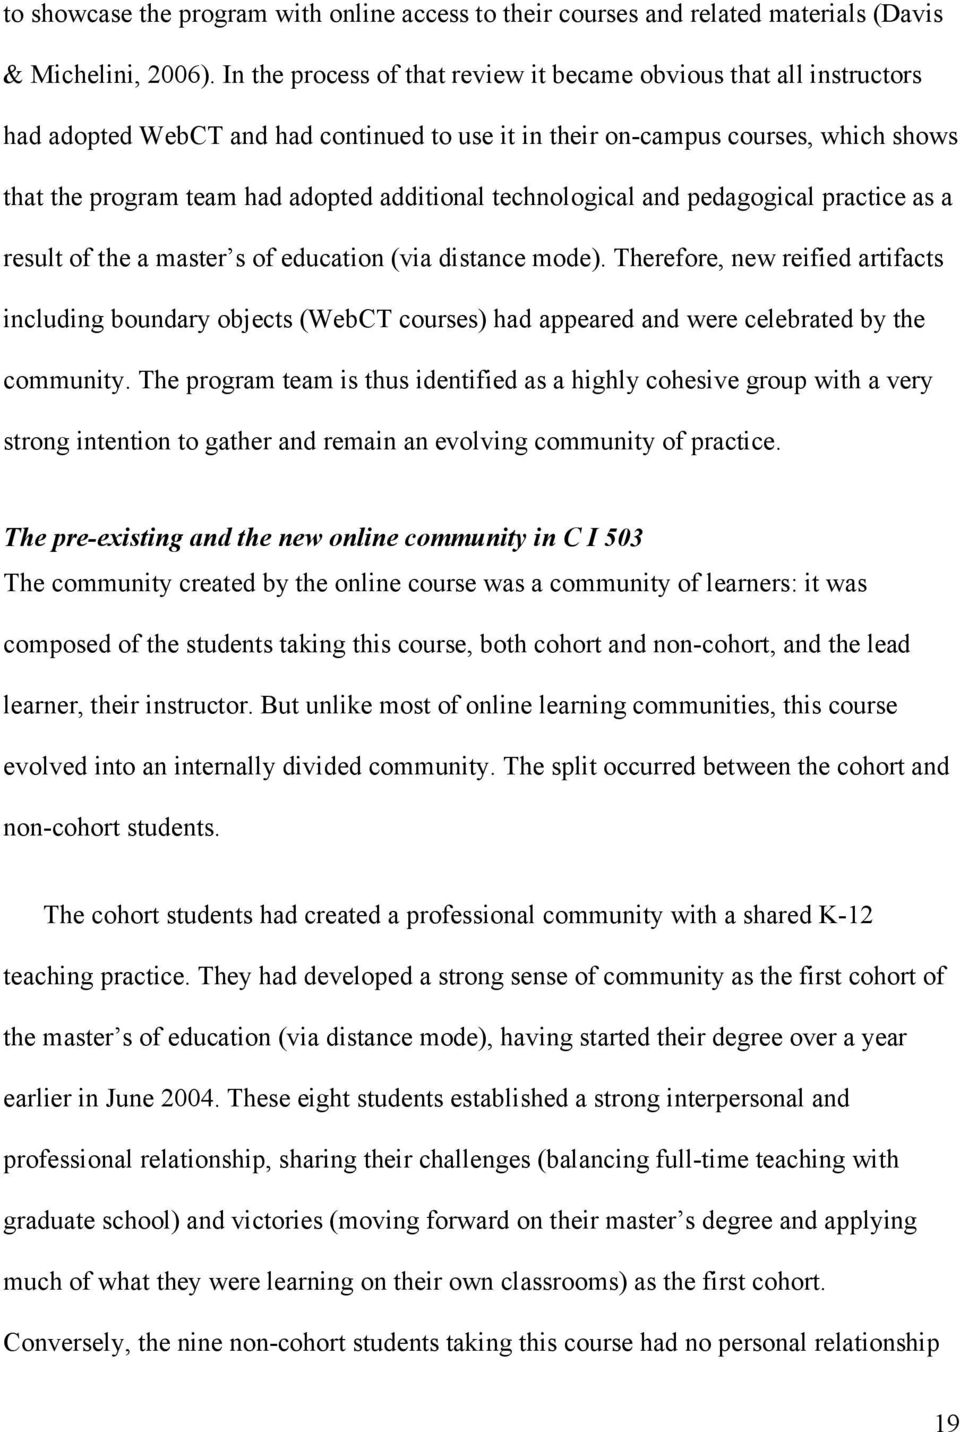 technological and pedagogical practice as a result of the a master s of education (via distance mode).